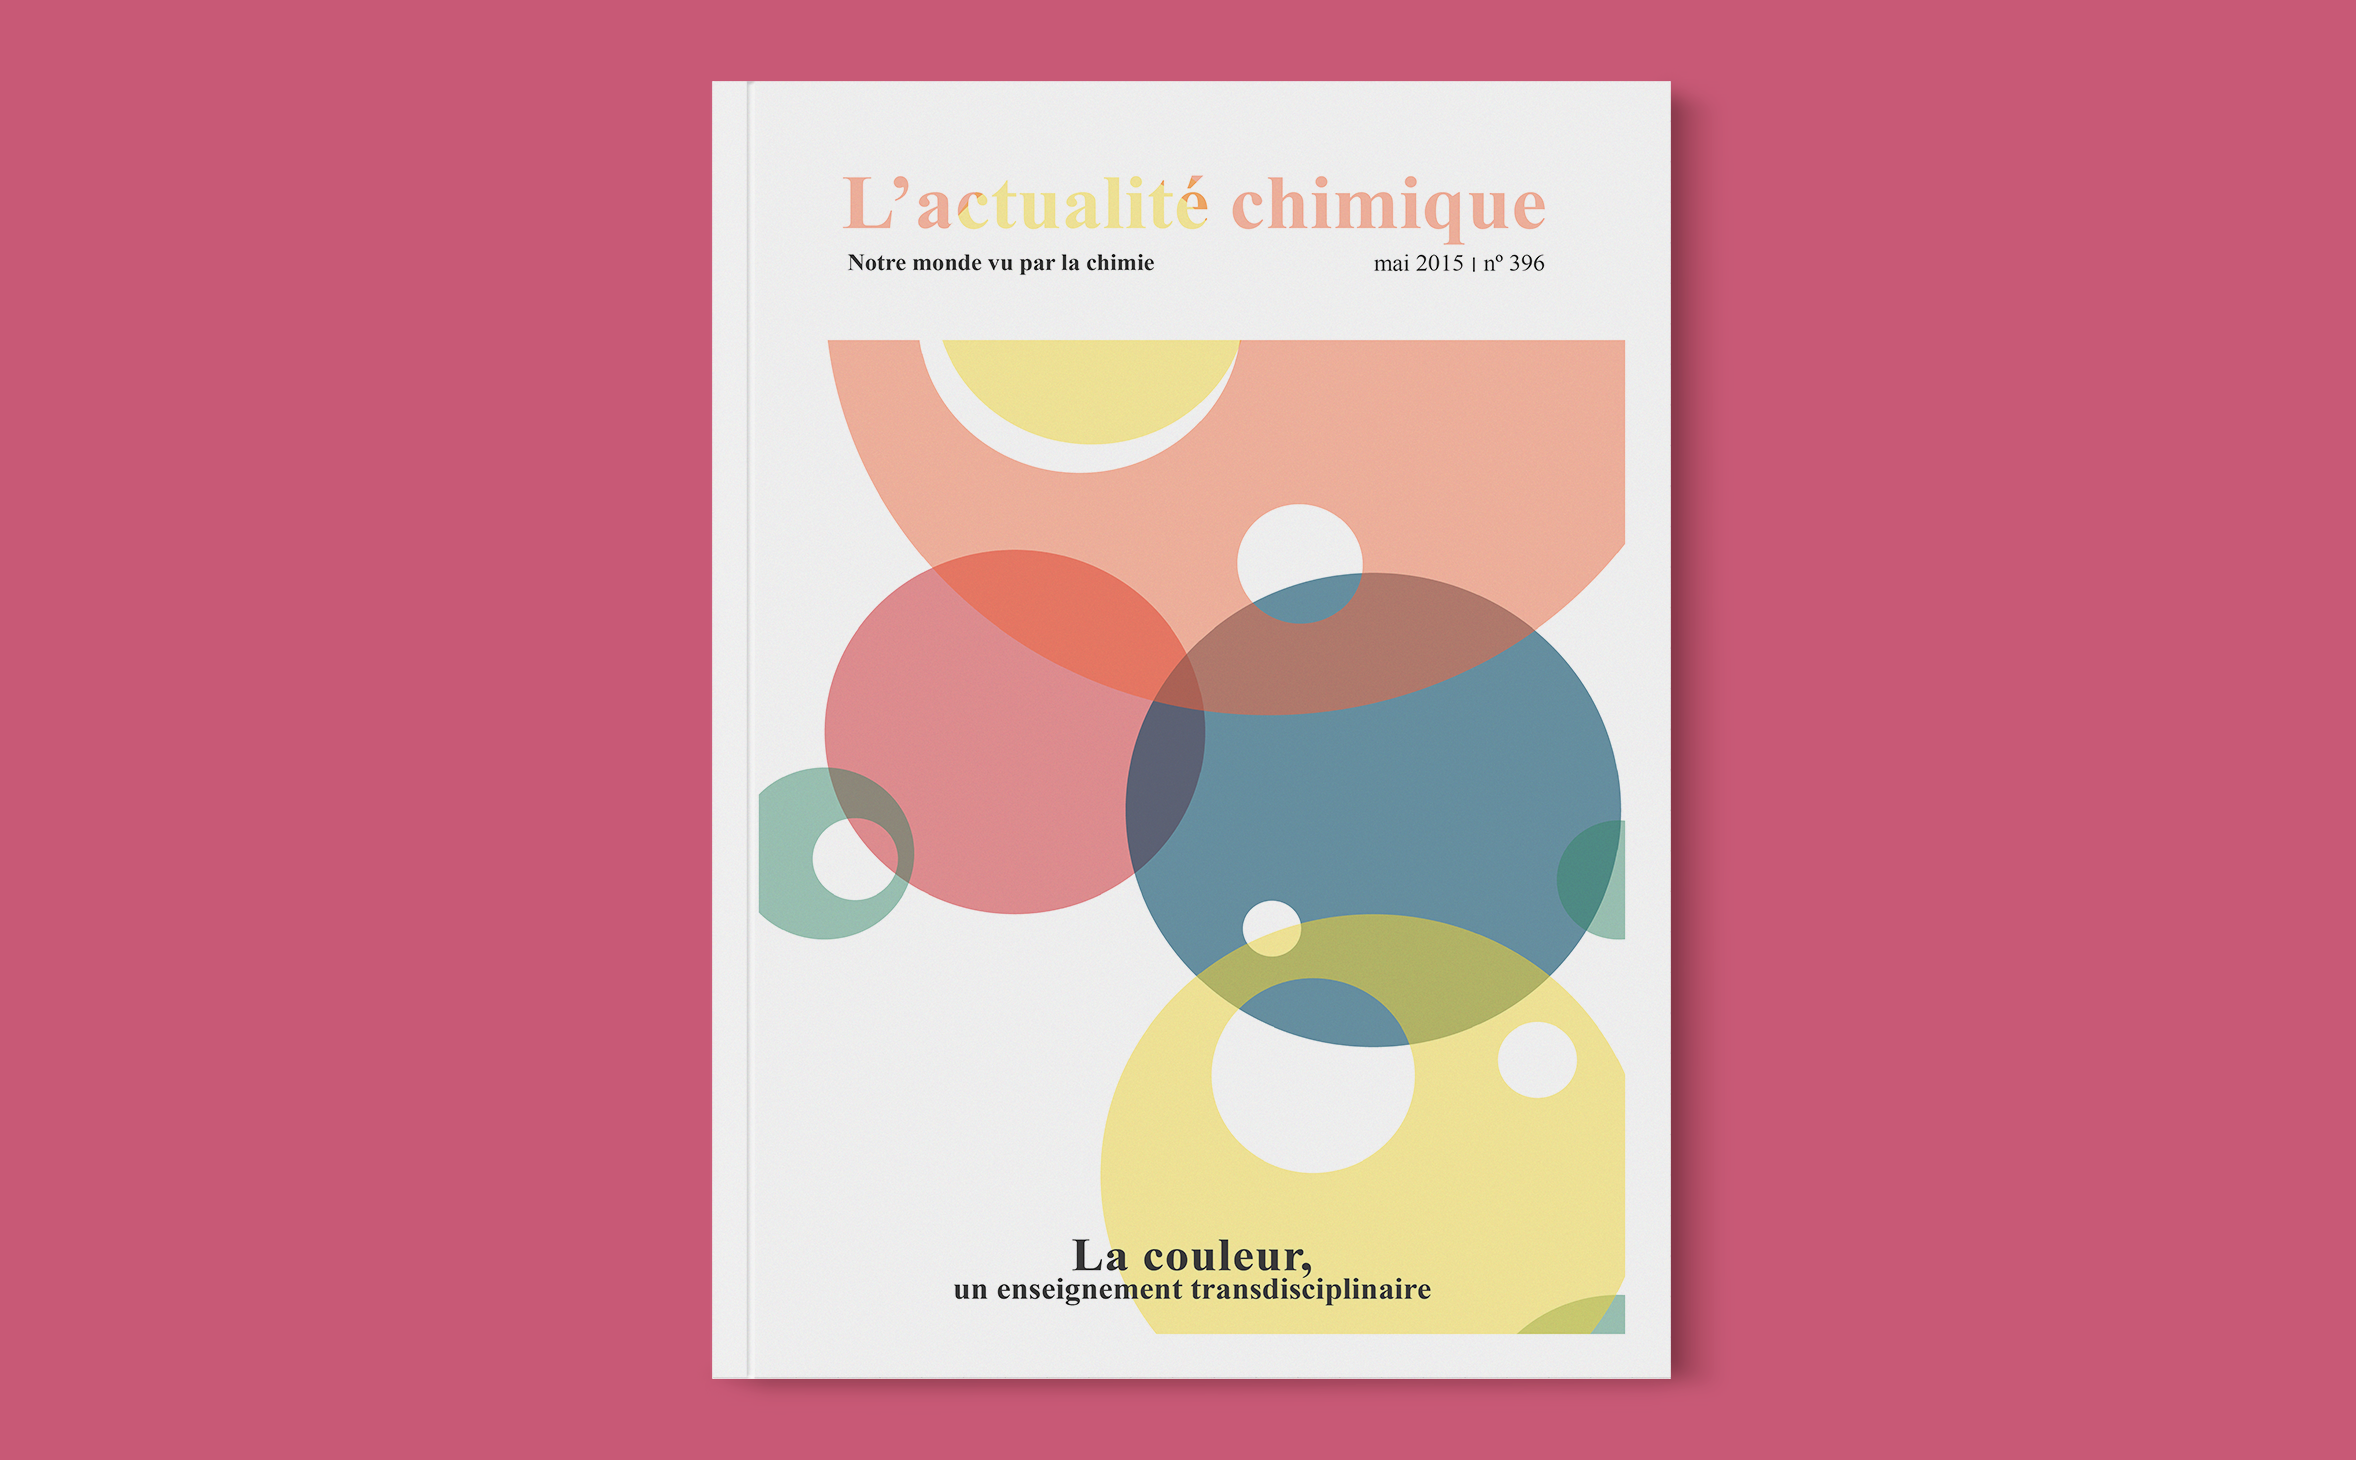 Cover proposals for L'actualité chimique magazine